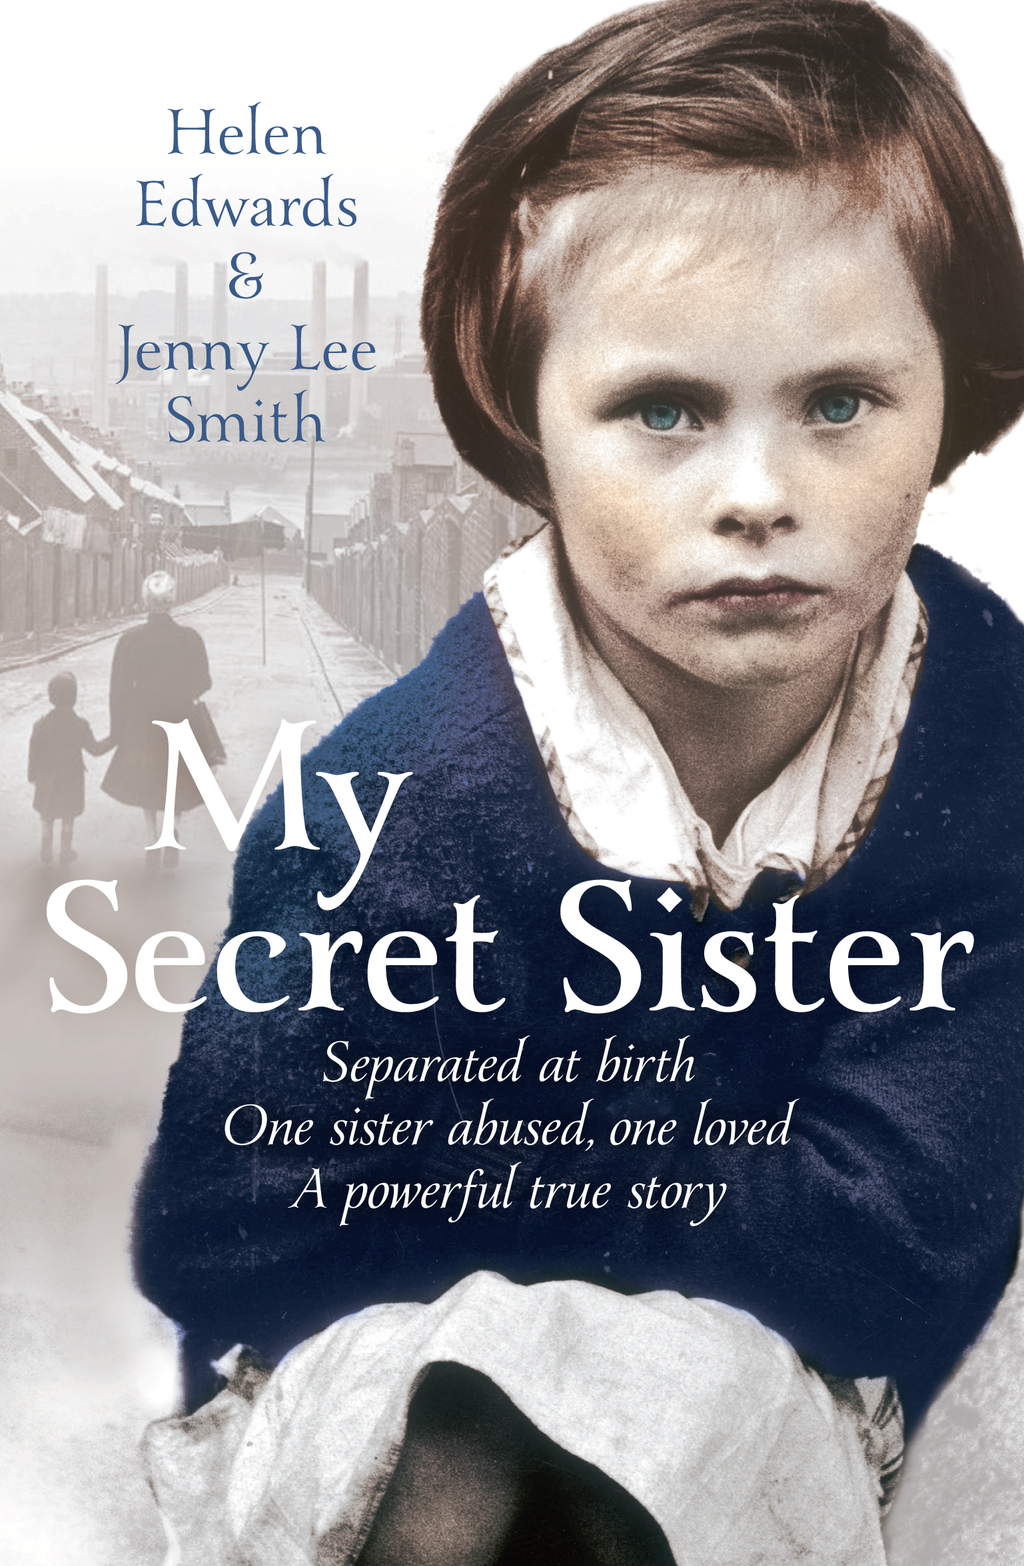 My Secret Sister Jenny Lucas and Helen Edwards' family story